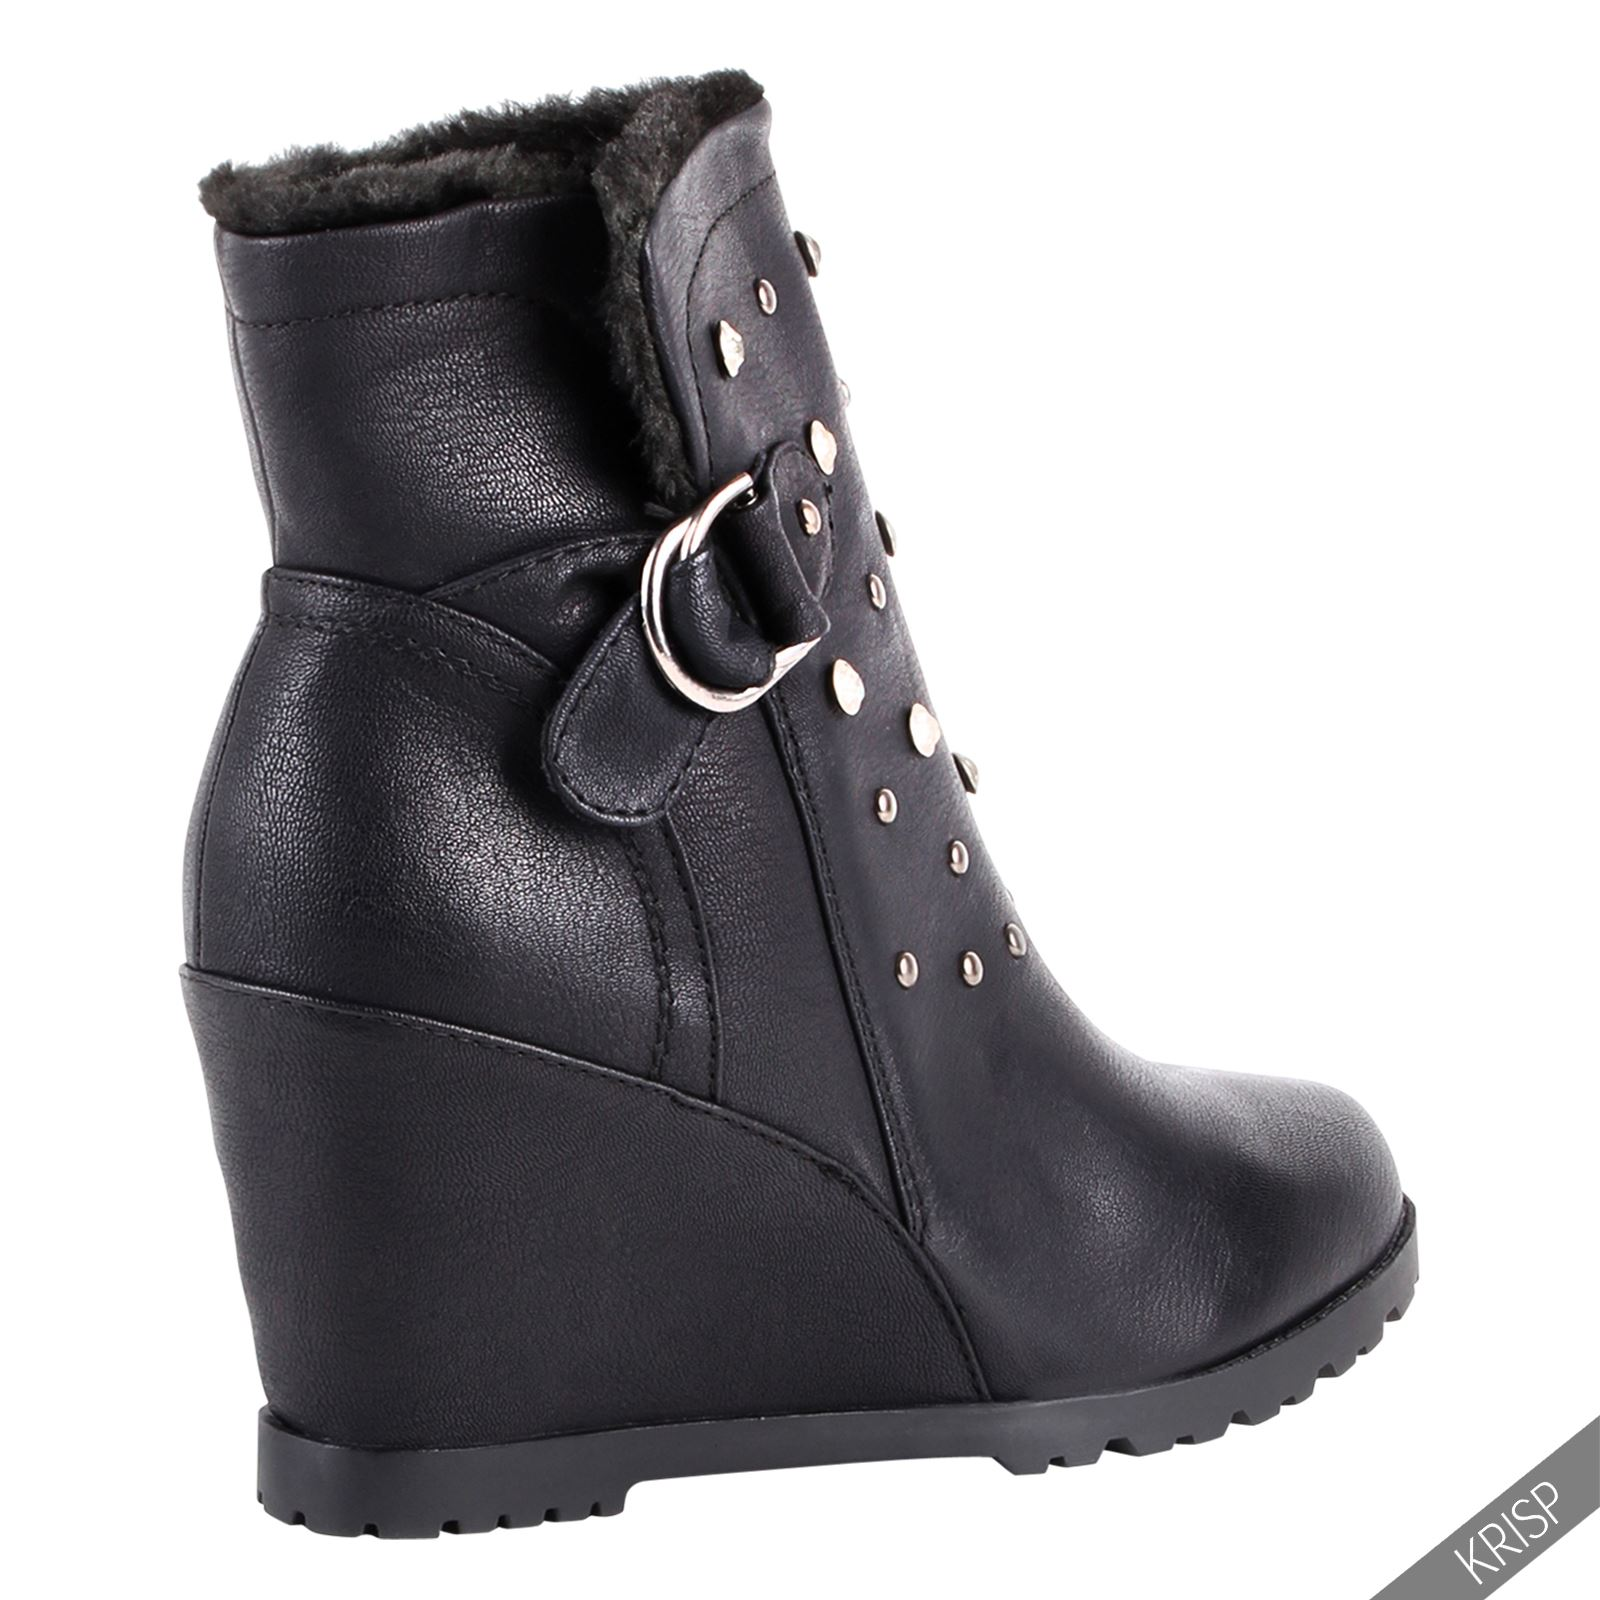 Womens Ankle Boots Women's Ankle Boots are a trendy alternative to taller knee or thigh-high boots, and we have various pairs from which to choose. We carry top brands like Frye, UGG, Clarks, Lucky Brand, Sorel, and Dr. Martens.